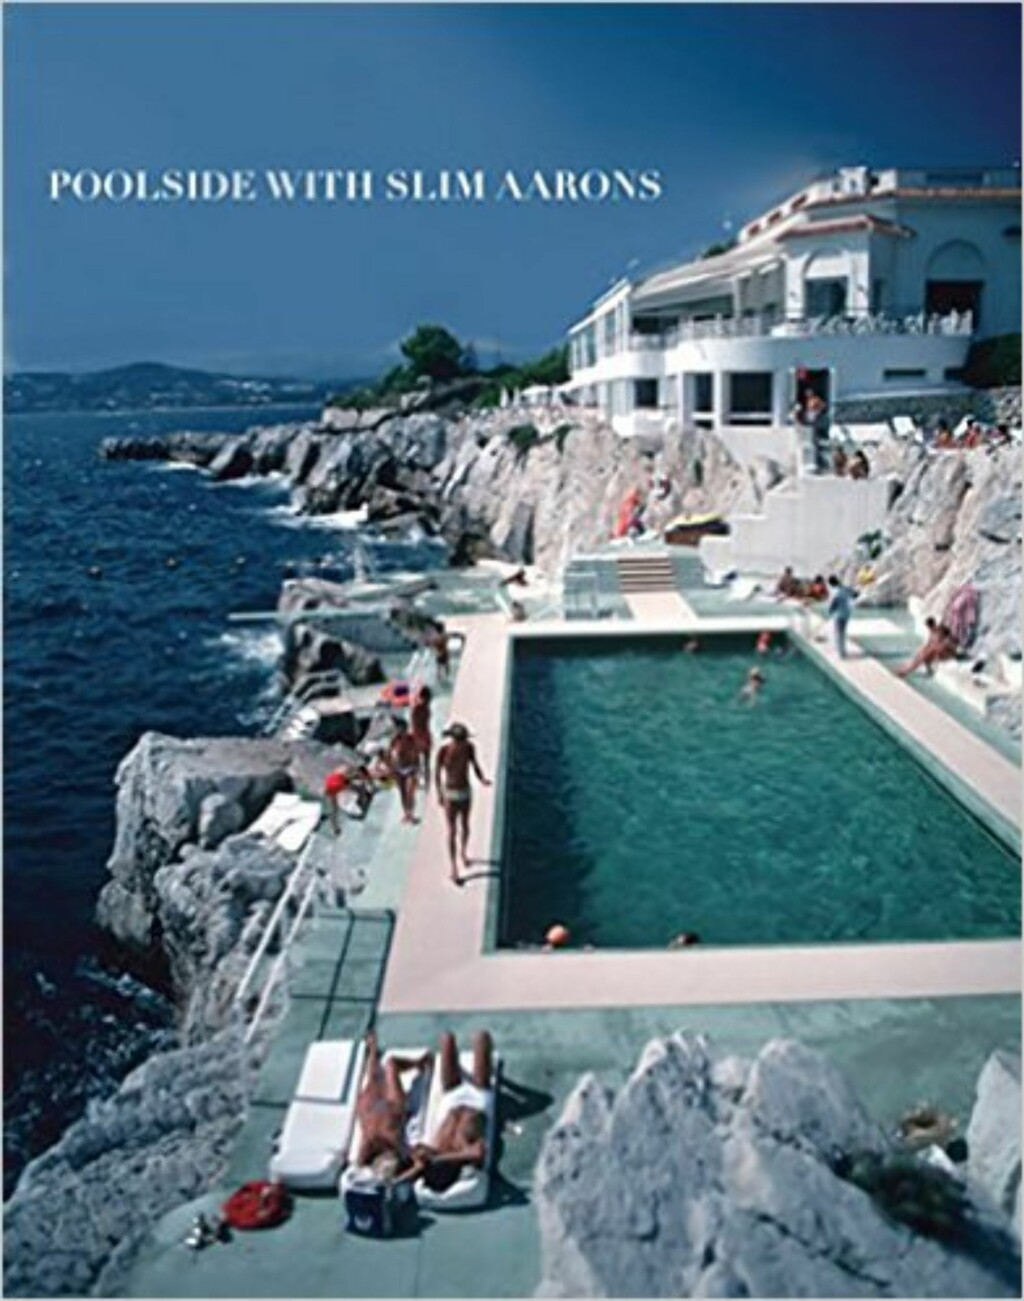 Poolside via Amazon.com, kr 577.